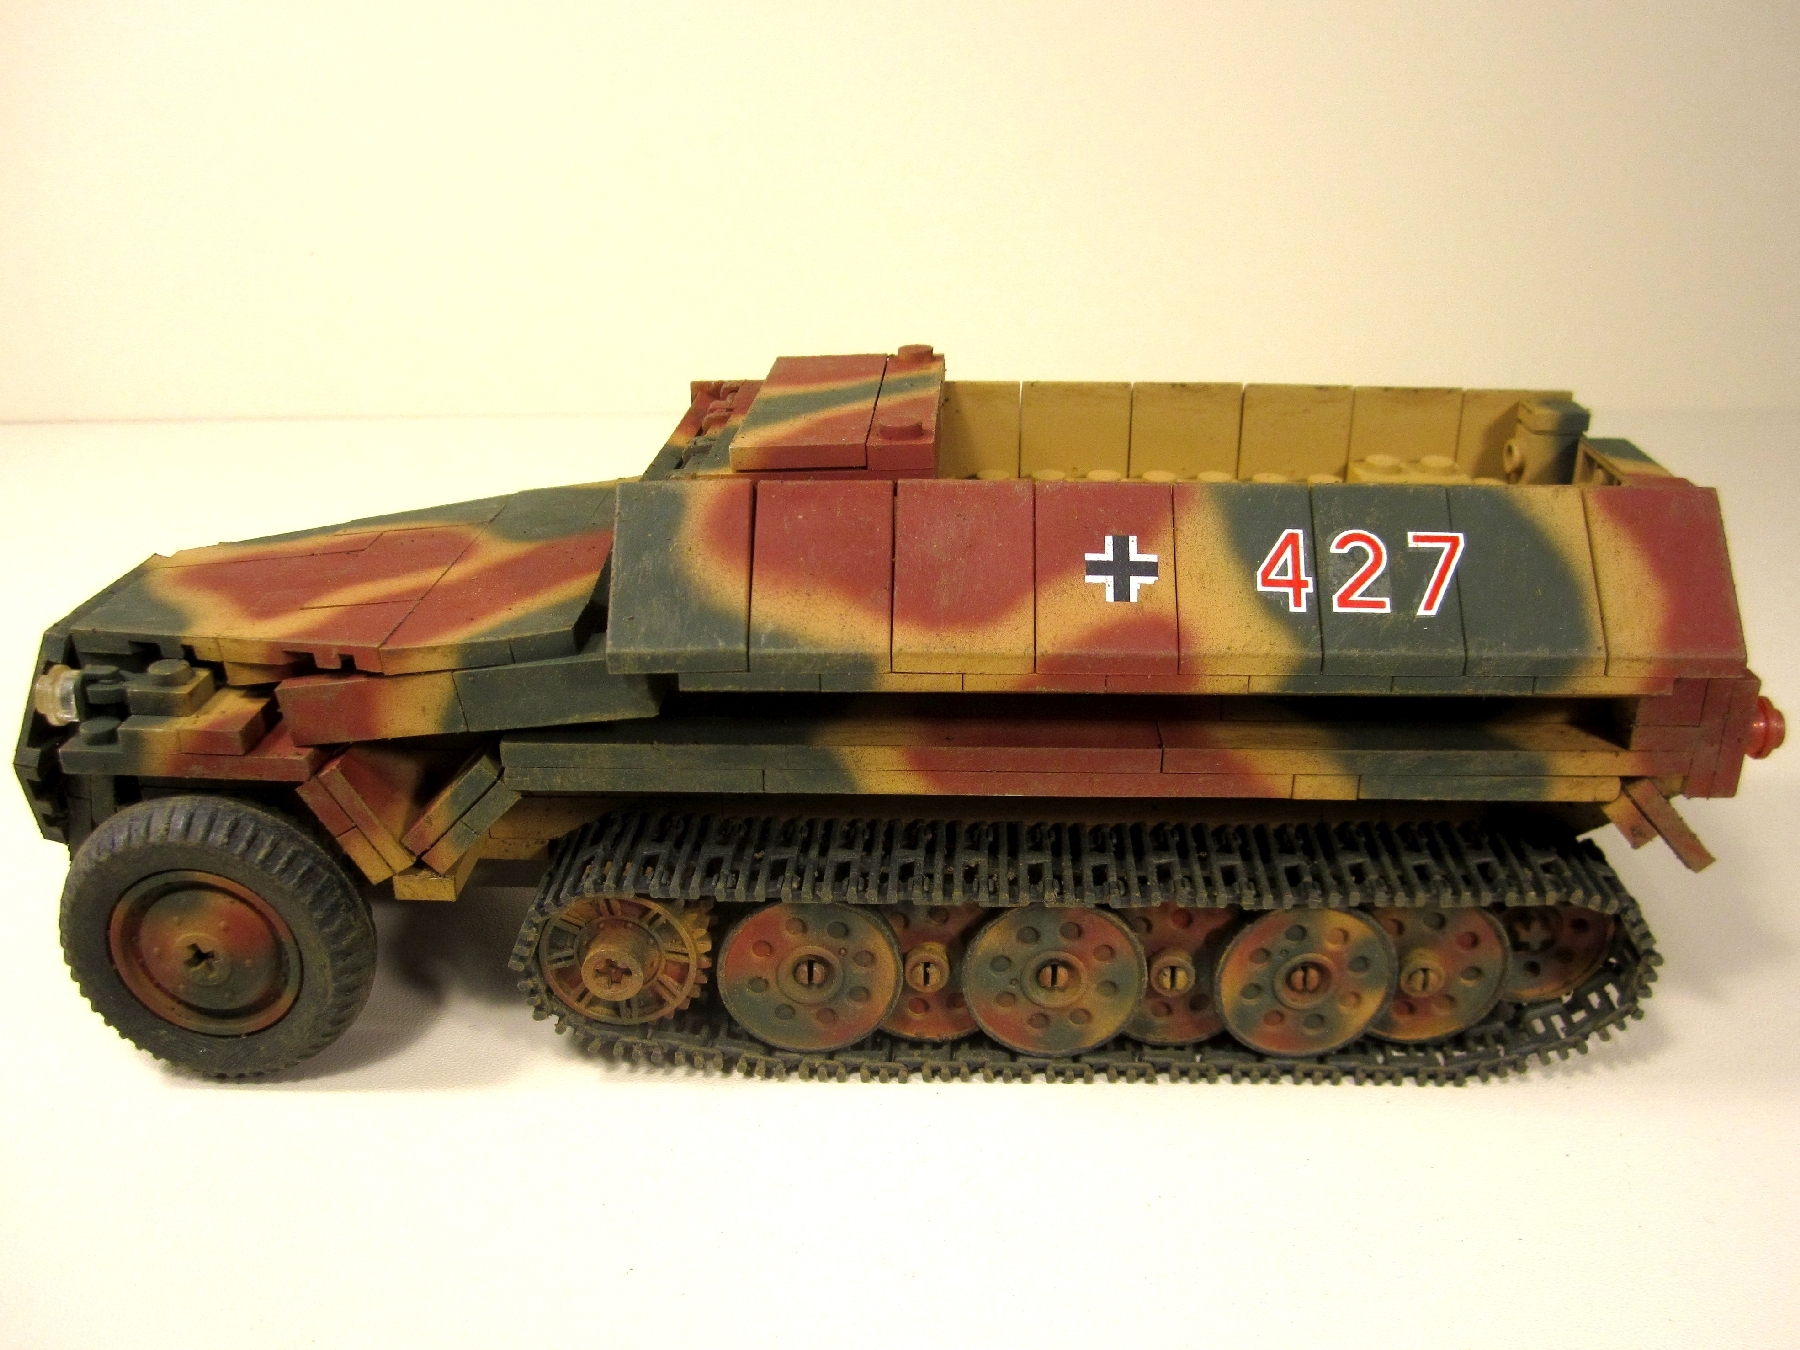 Cobi_2472_SdKfz_251-1_www.super-bricks.de_camouflage_paint_Small_Army_Tarnung_1